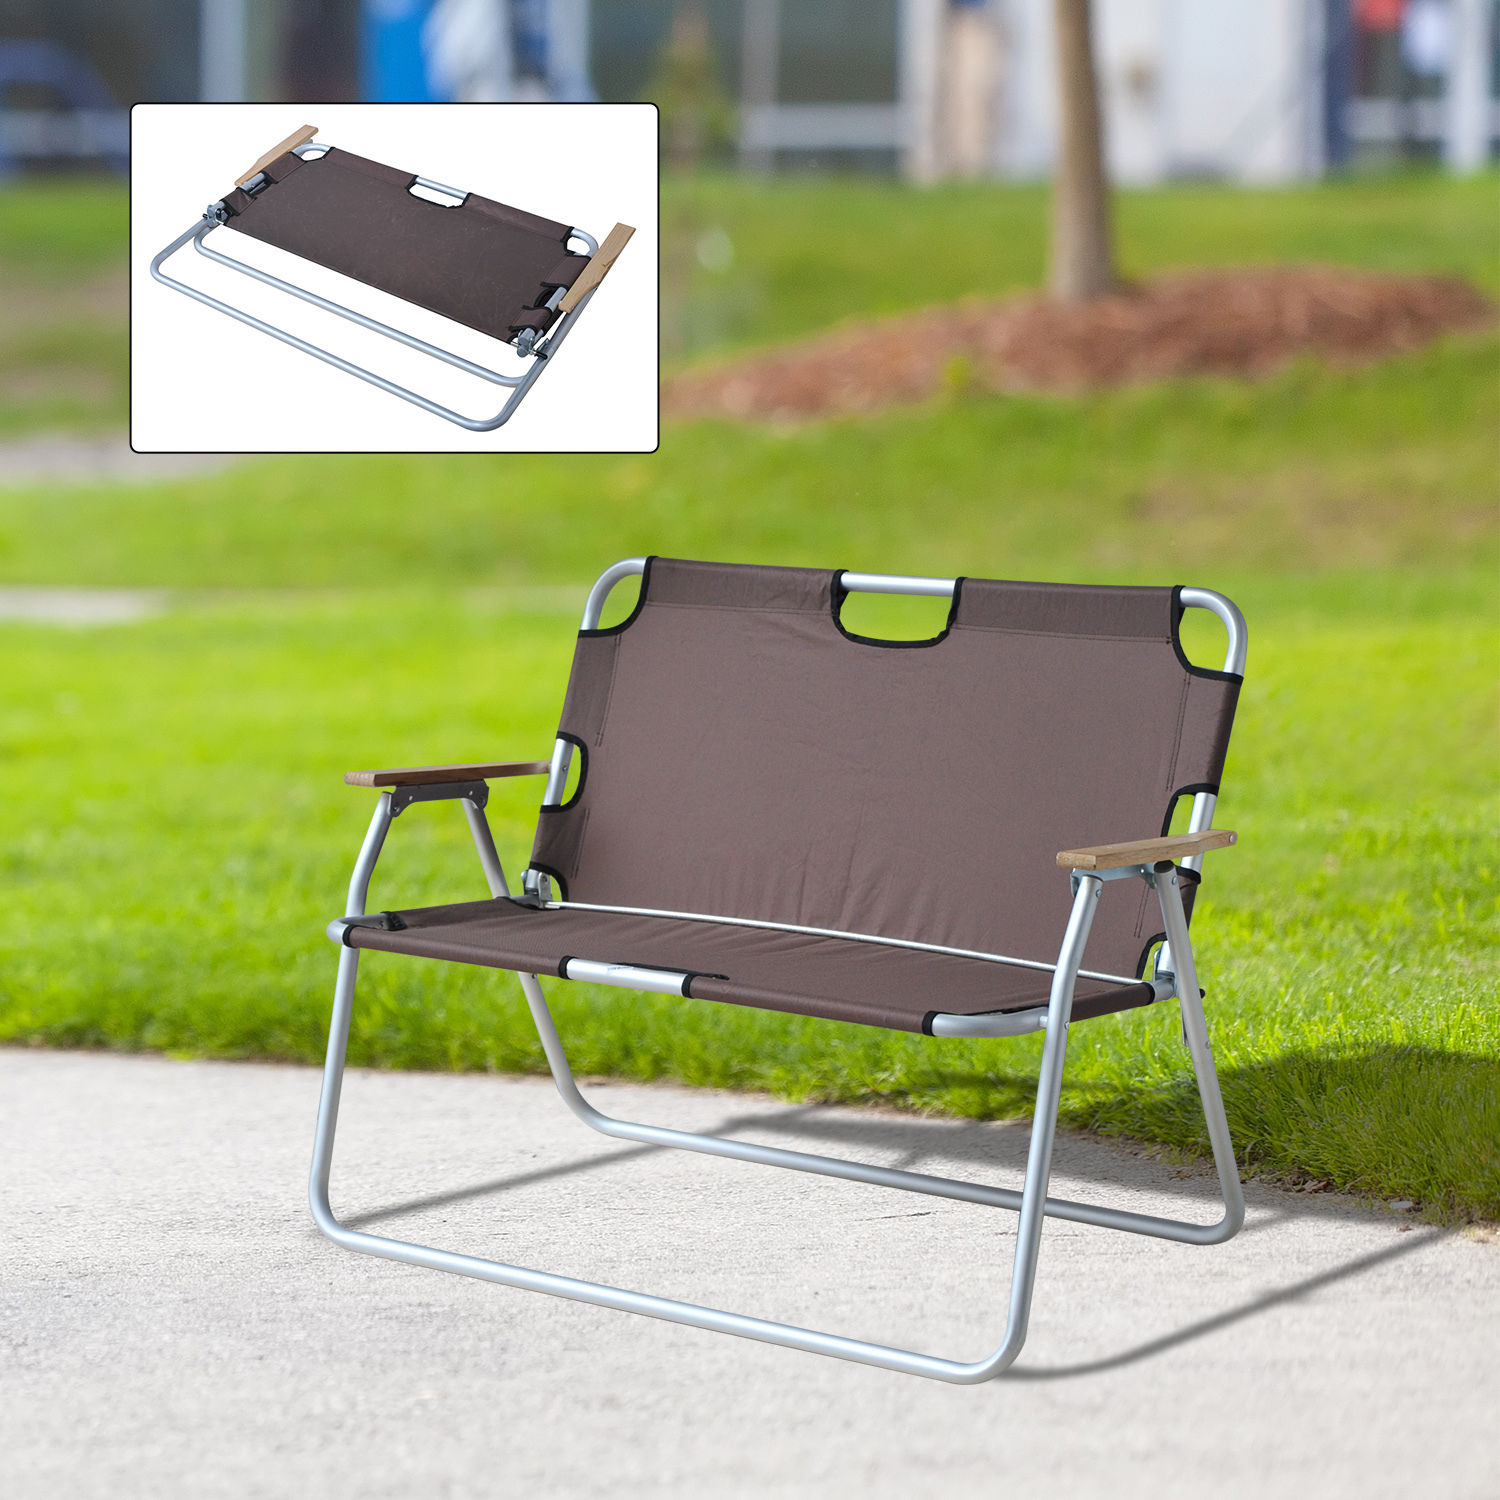 Outdoor 2 Seat Camping Bench Garden Lounge Lawn Chair Foldable ...